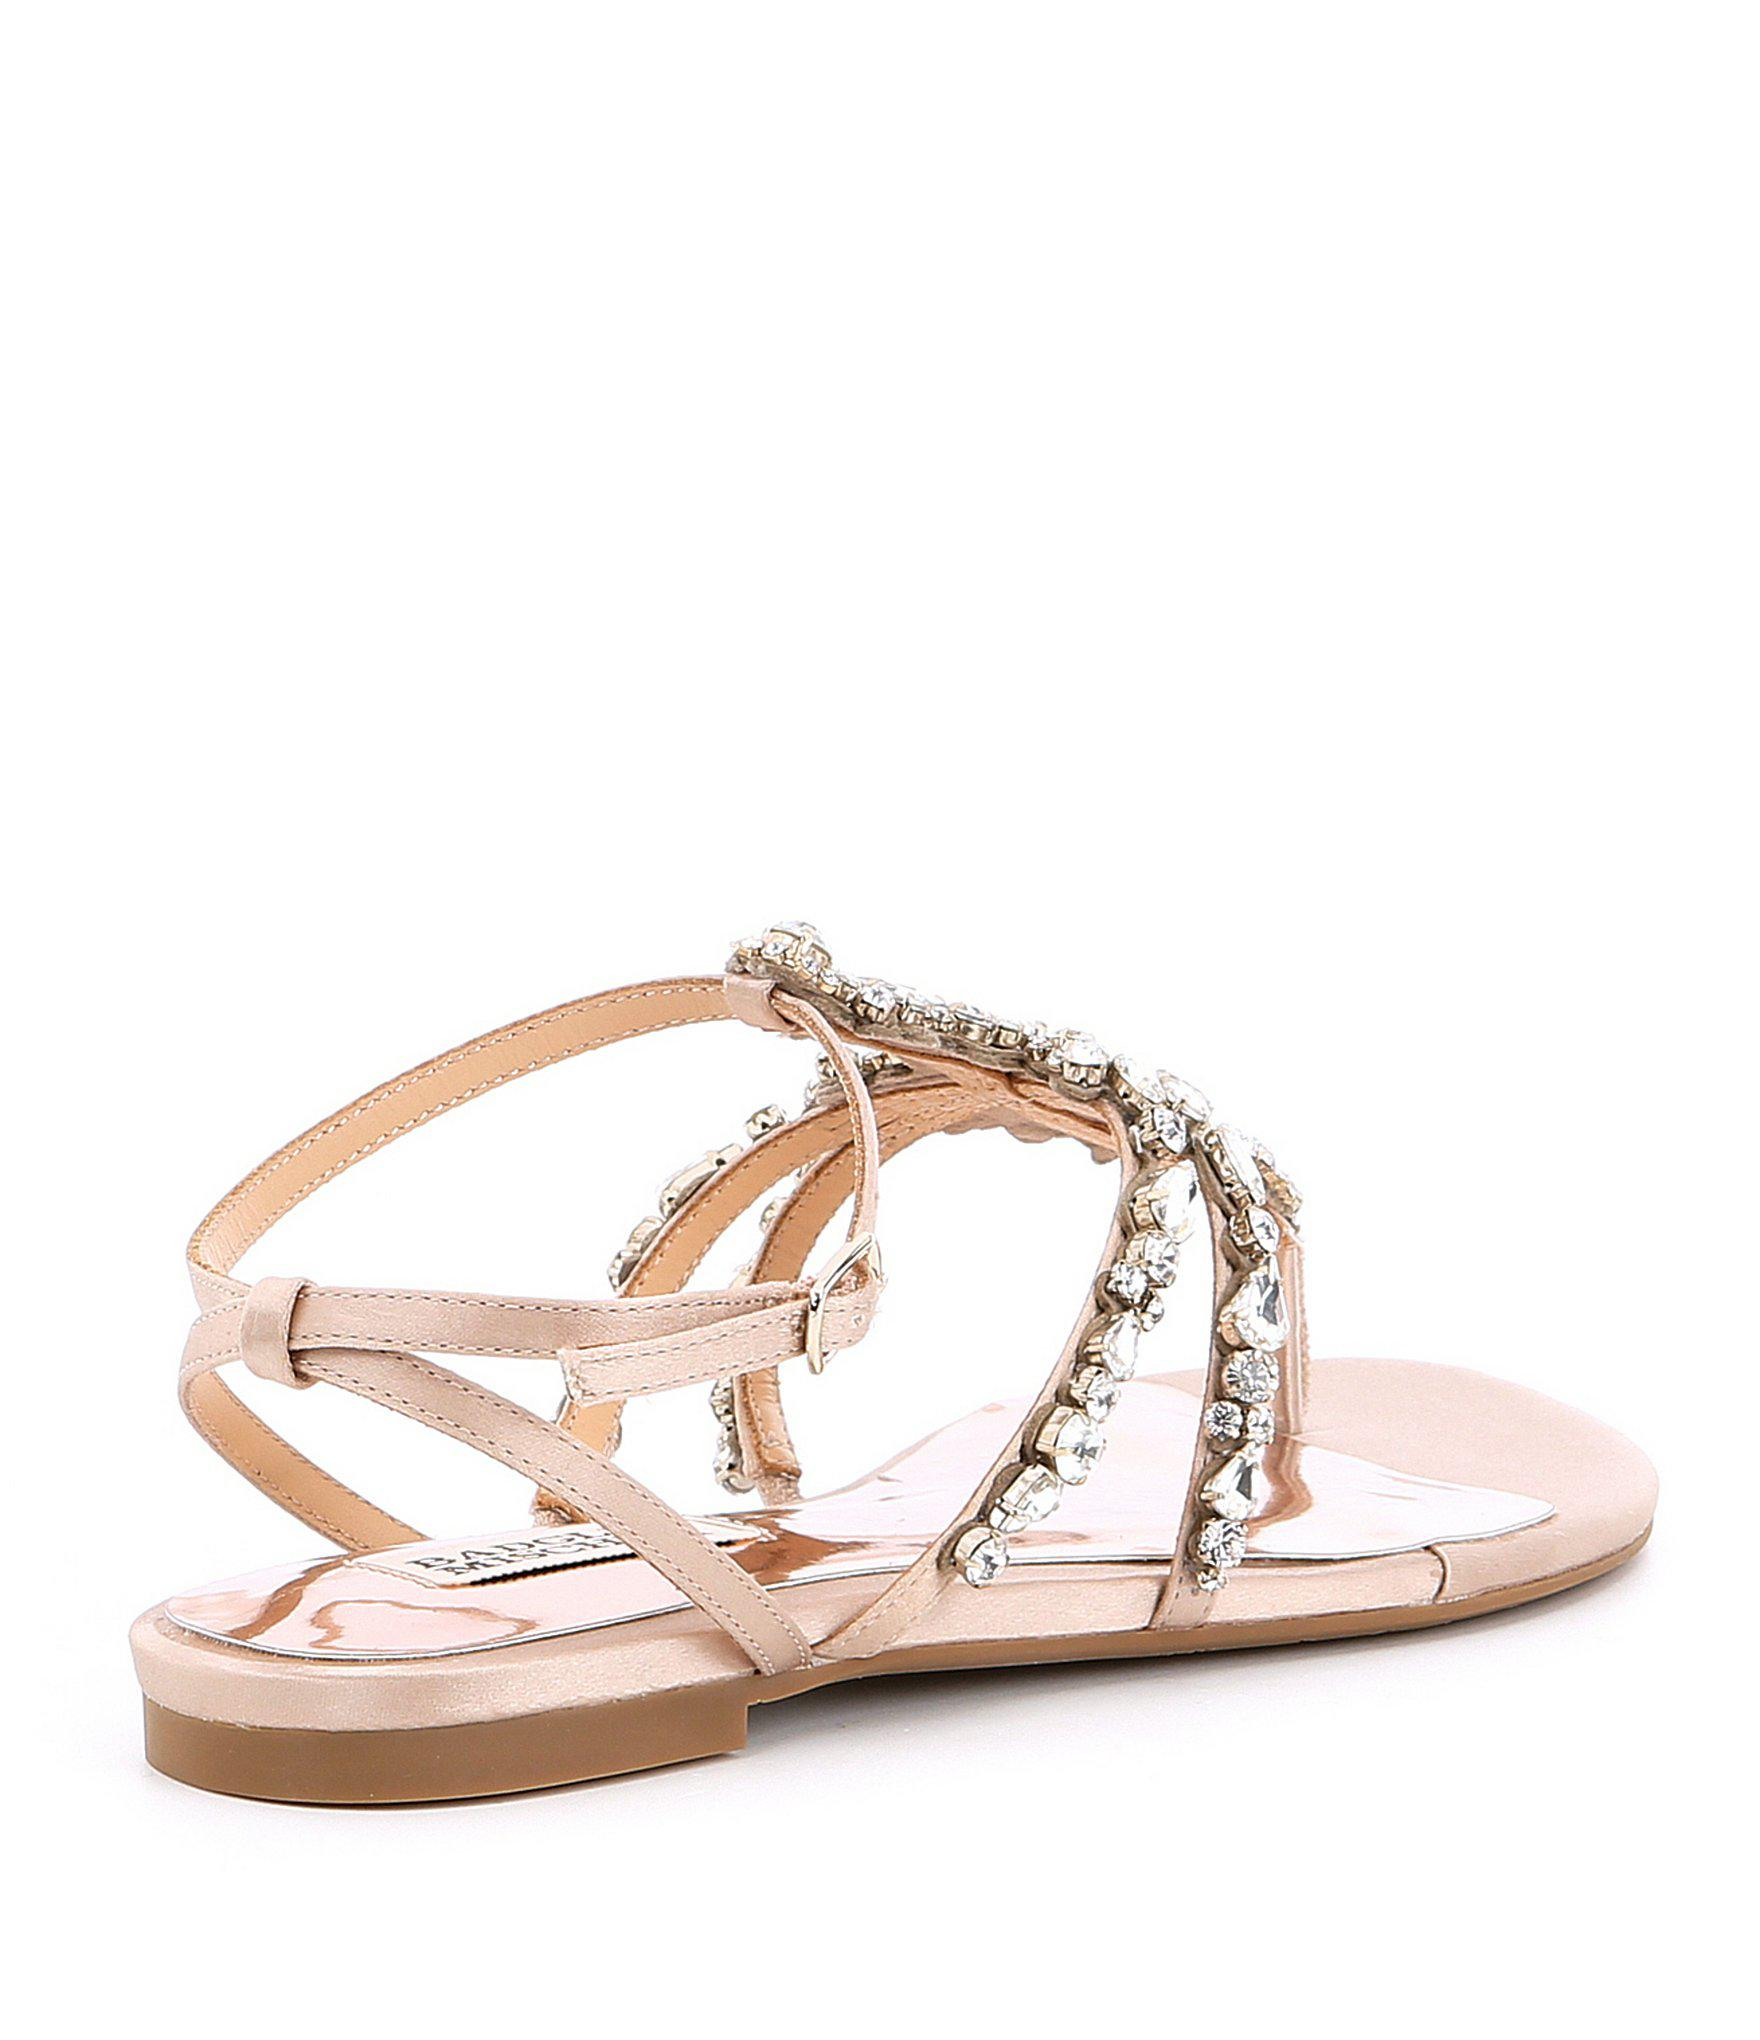 cb8003be8d155e Lyst - Badgley Mischka Hampden Satin Jeweled Ankle Strap Sandals